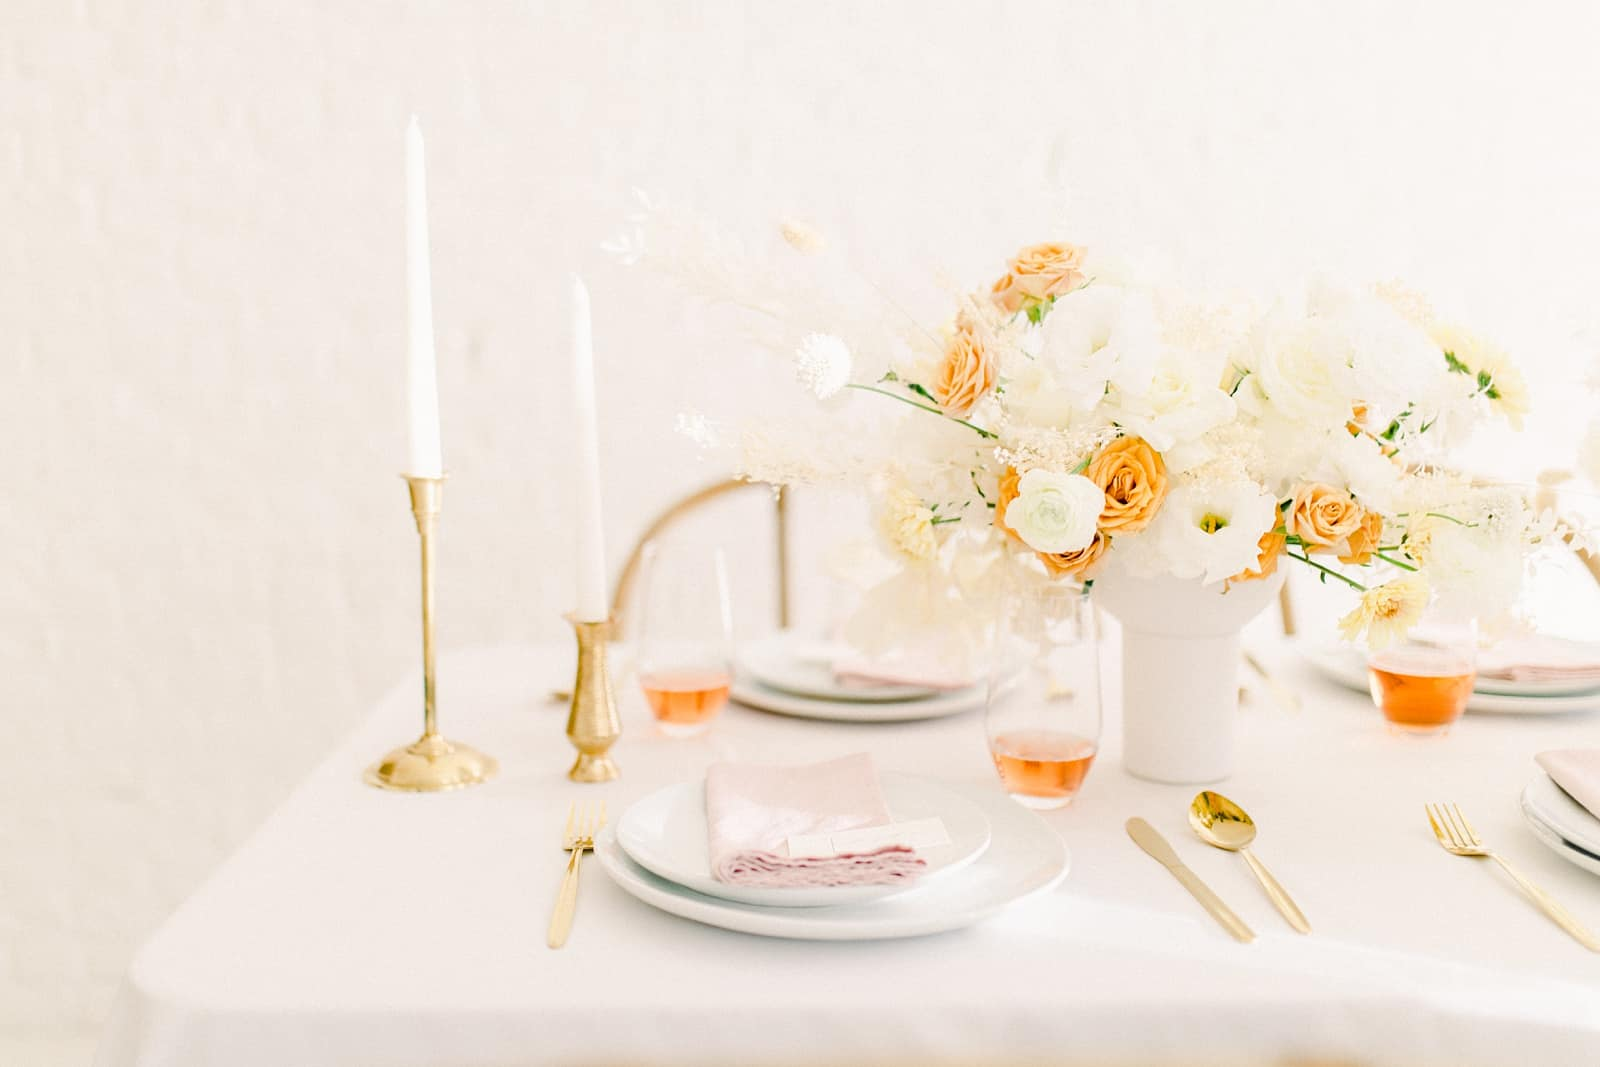 Modern wedding table scape with white and orange flower centerpiece and blush pink napkins and gold candlesticks